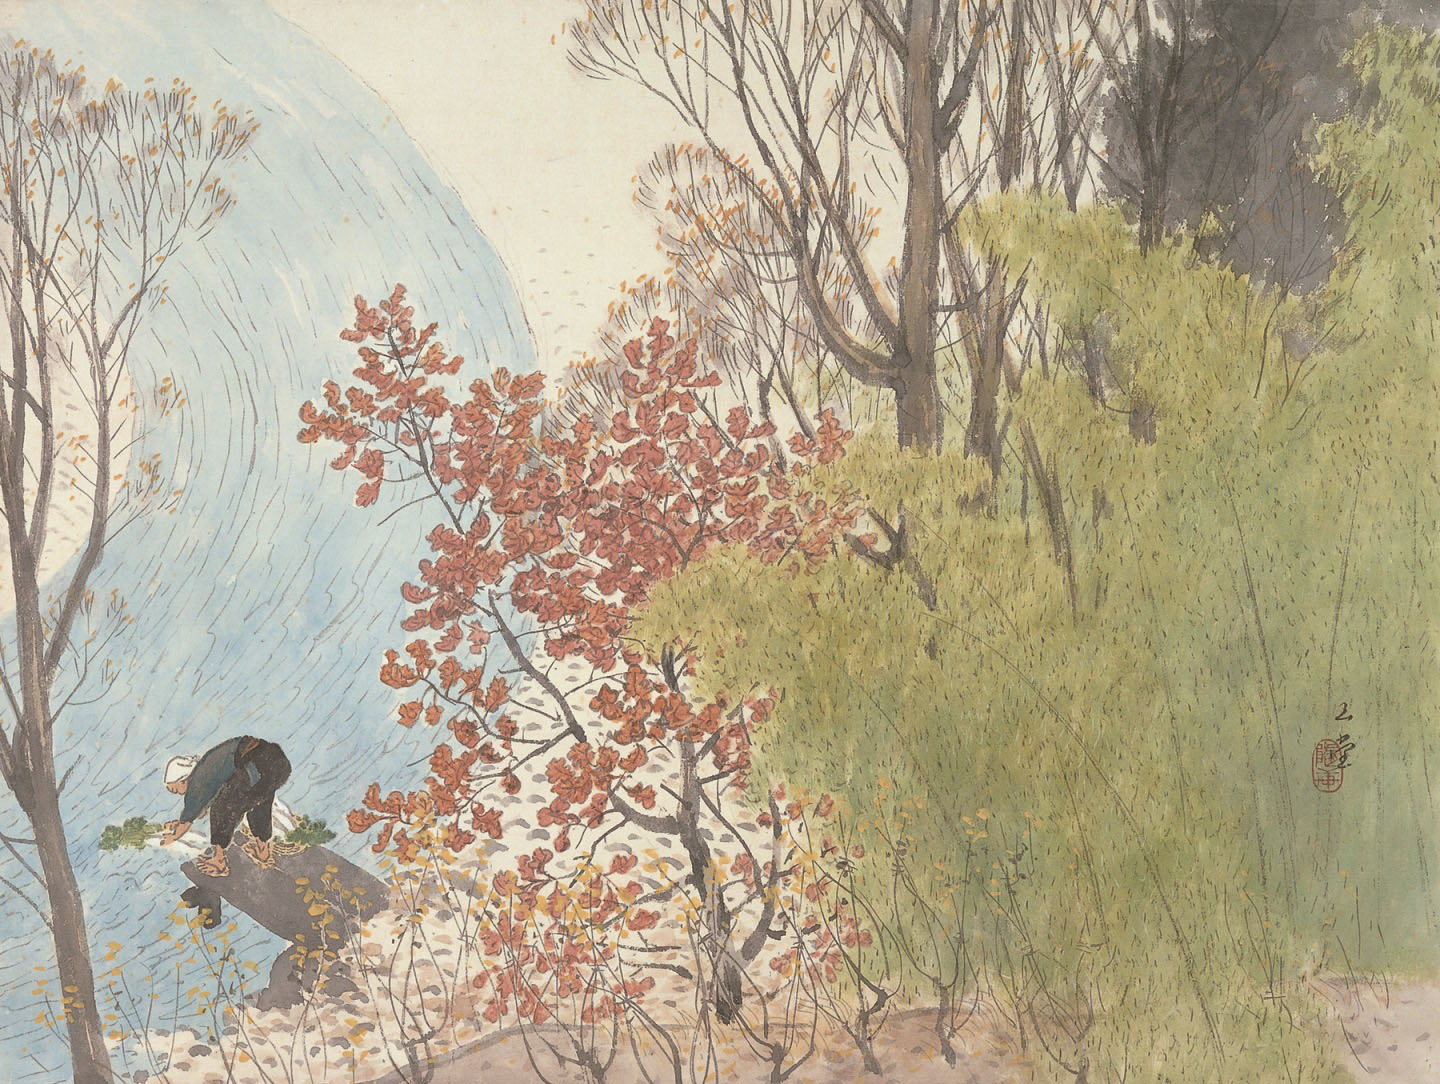 'Autumn Shine' (c. 1955) | {OTANI MEMORIAL ART MUSEUM, NISHINOMIYA CITY